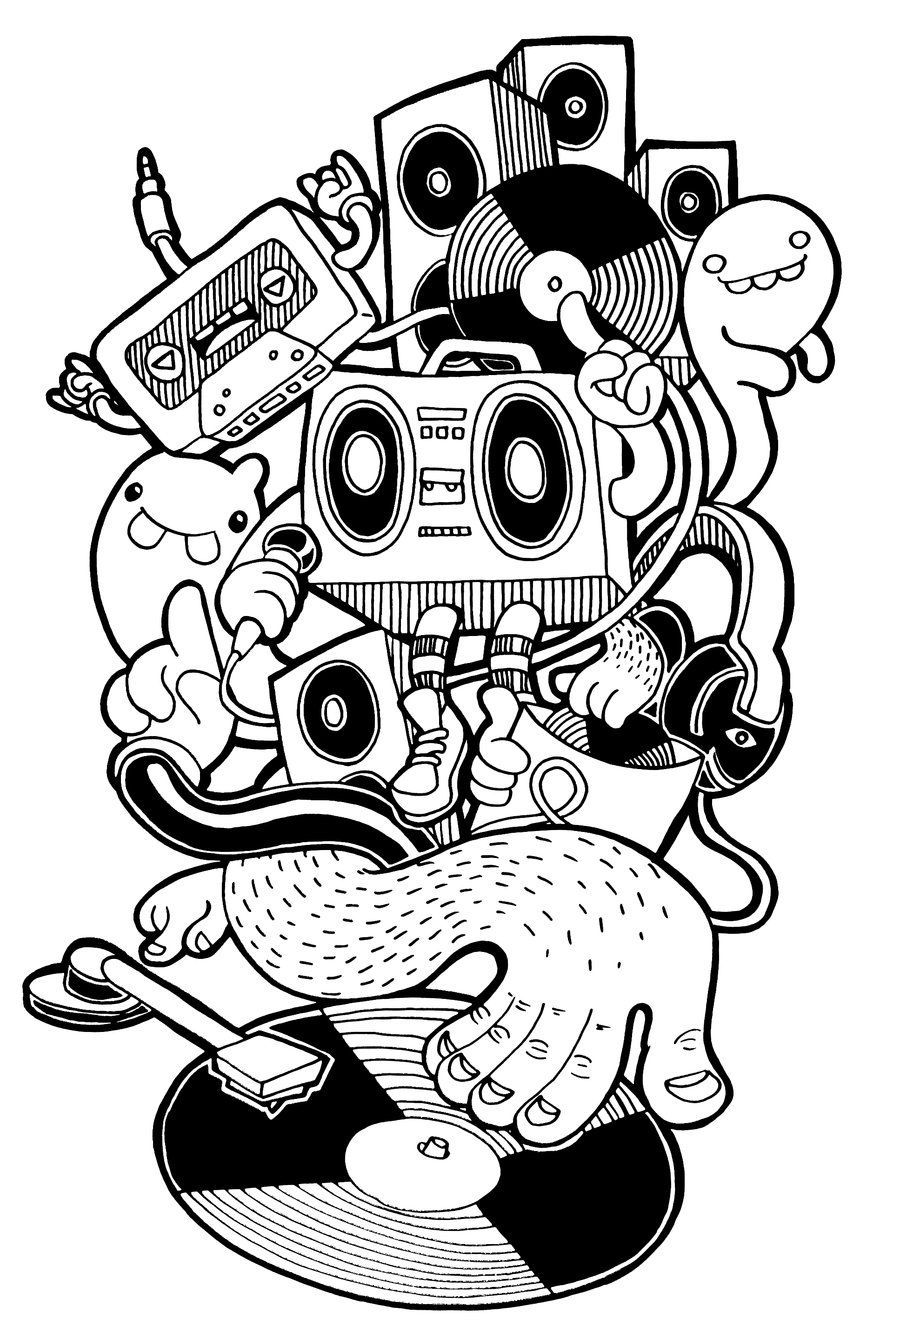 vexx art coloring pages cause coloring doodle art coloring pages vexx coloring vexx pages art